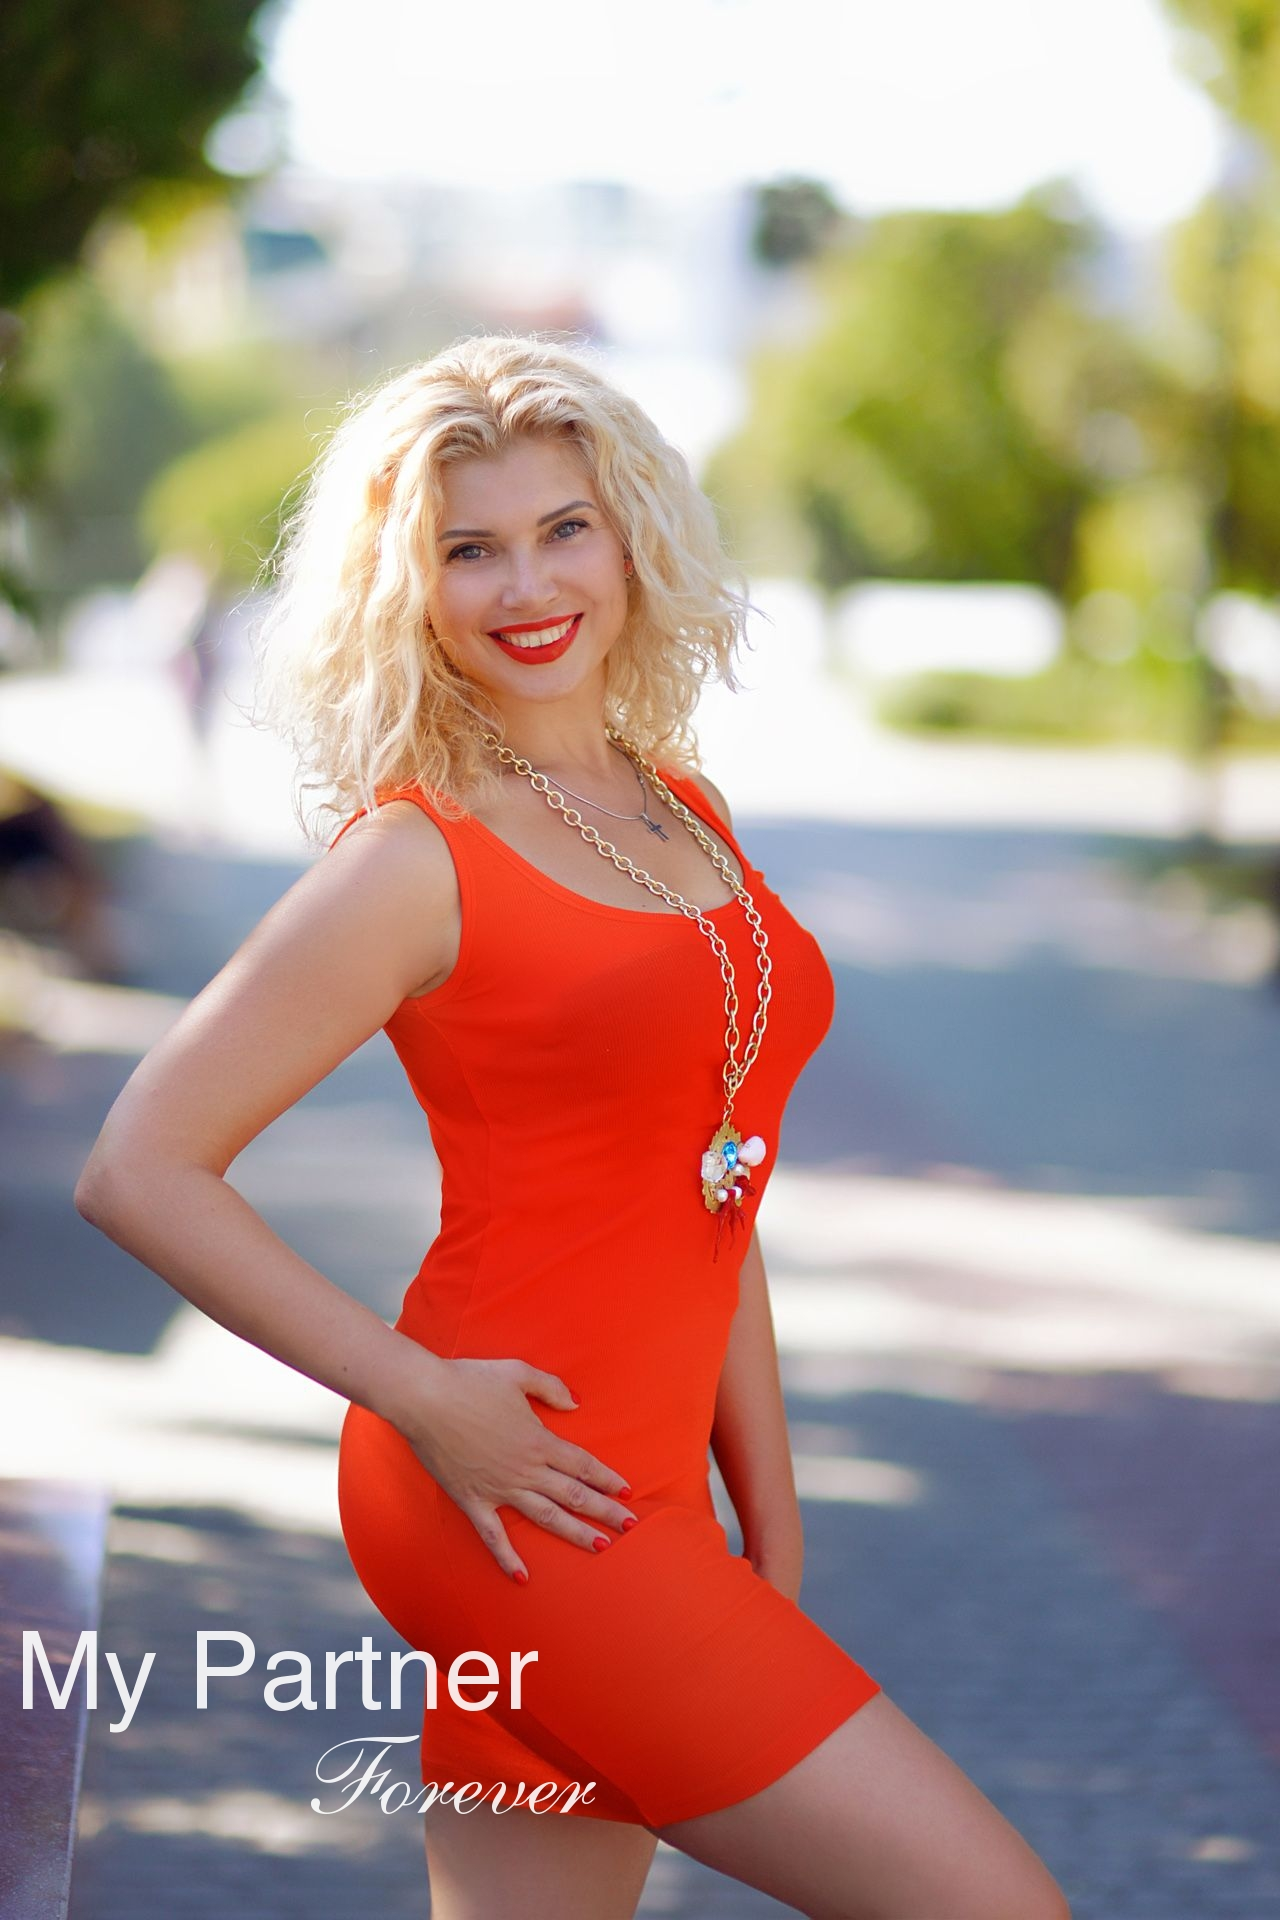 Pretty Woman from Ukraine - Alina from Kharkov, Ukraine